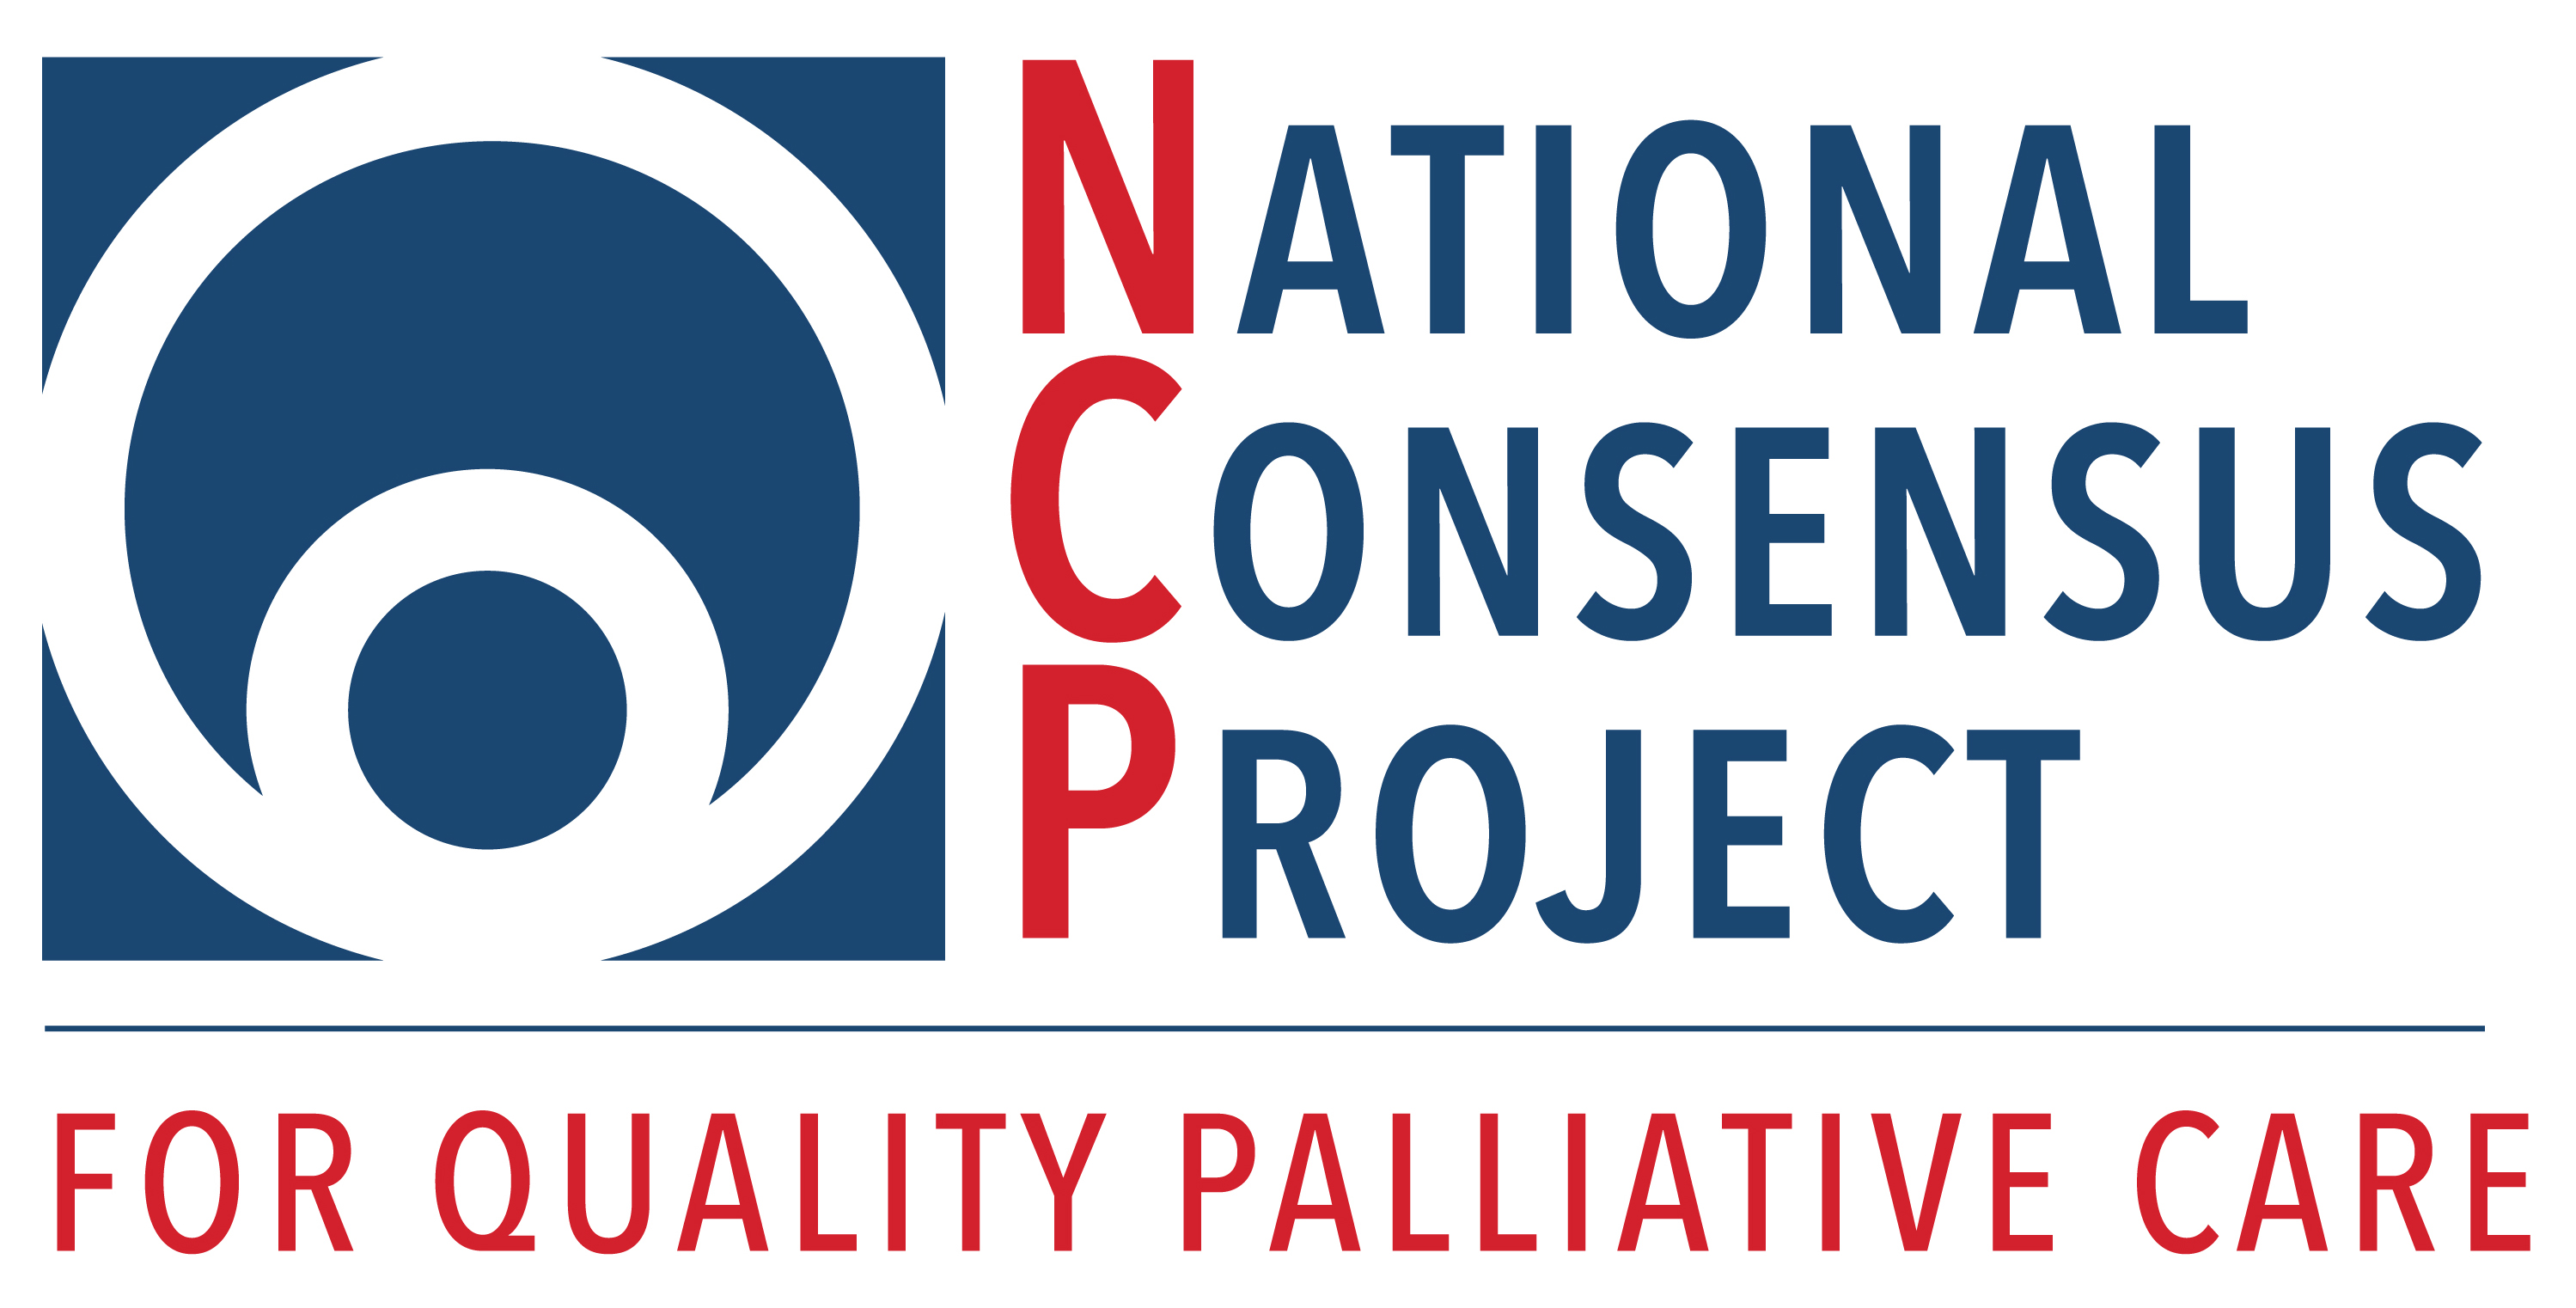 New National Guidelines Seek to Improve Access to Palliative